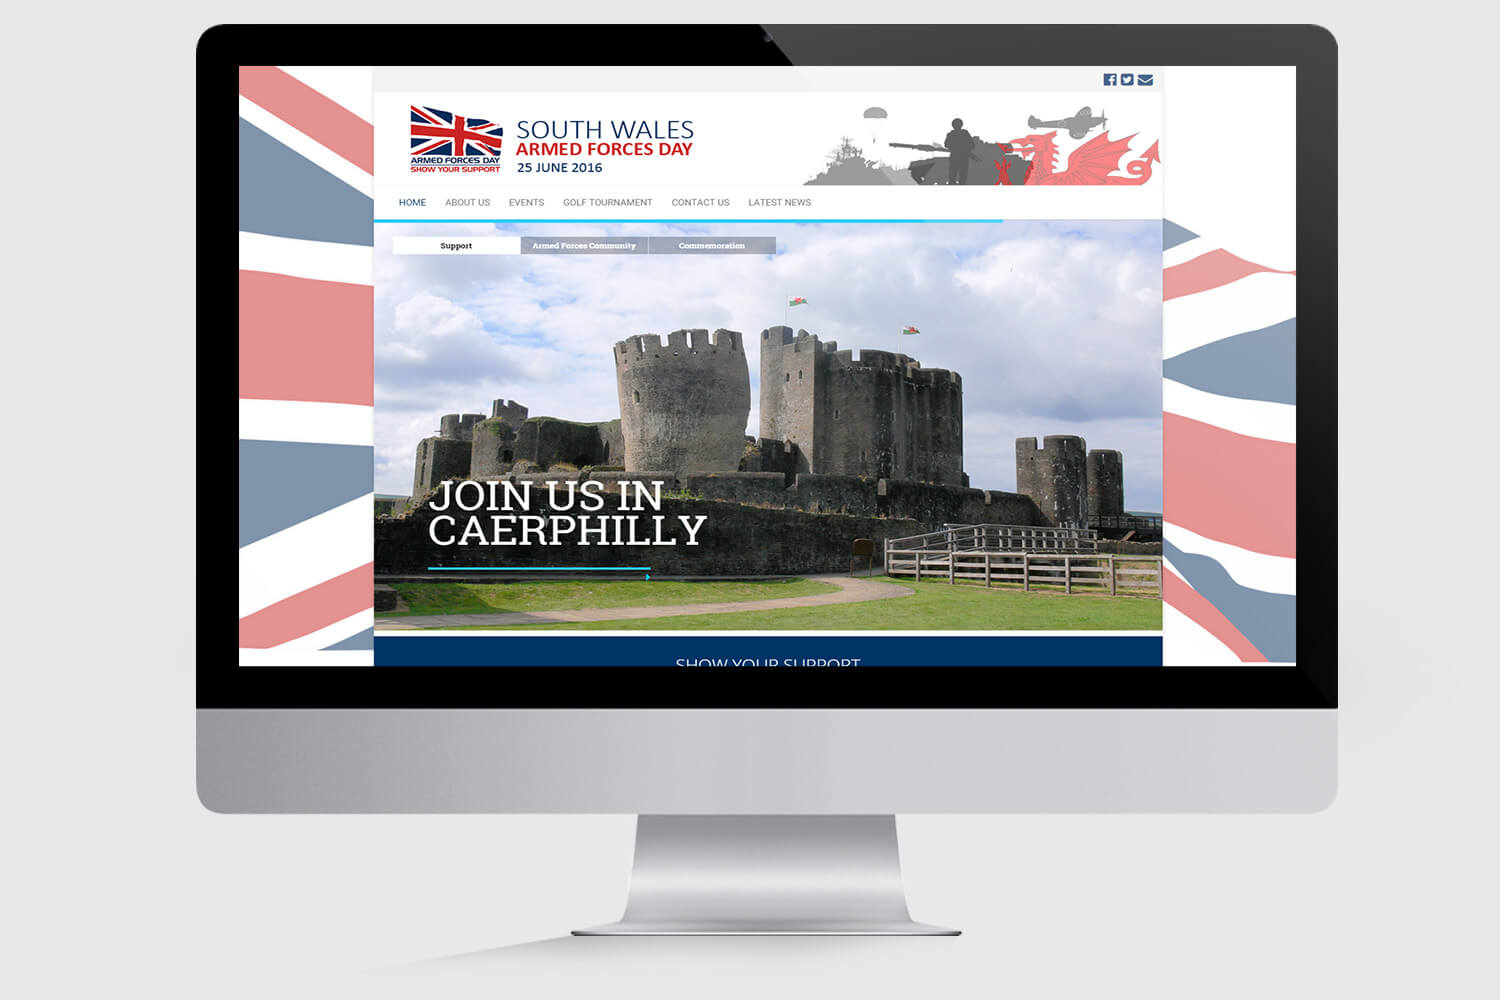 South Wales Armed Forces Day Mockup 1